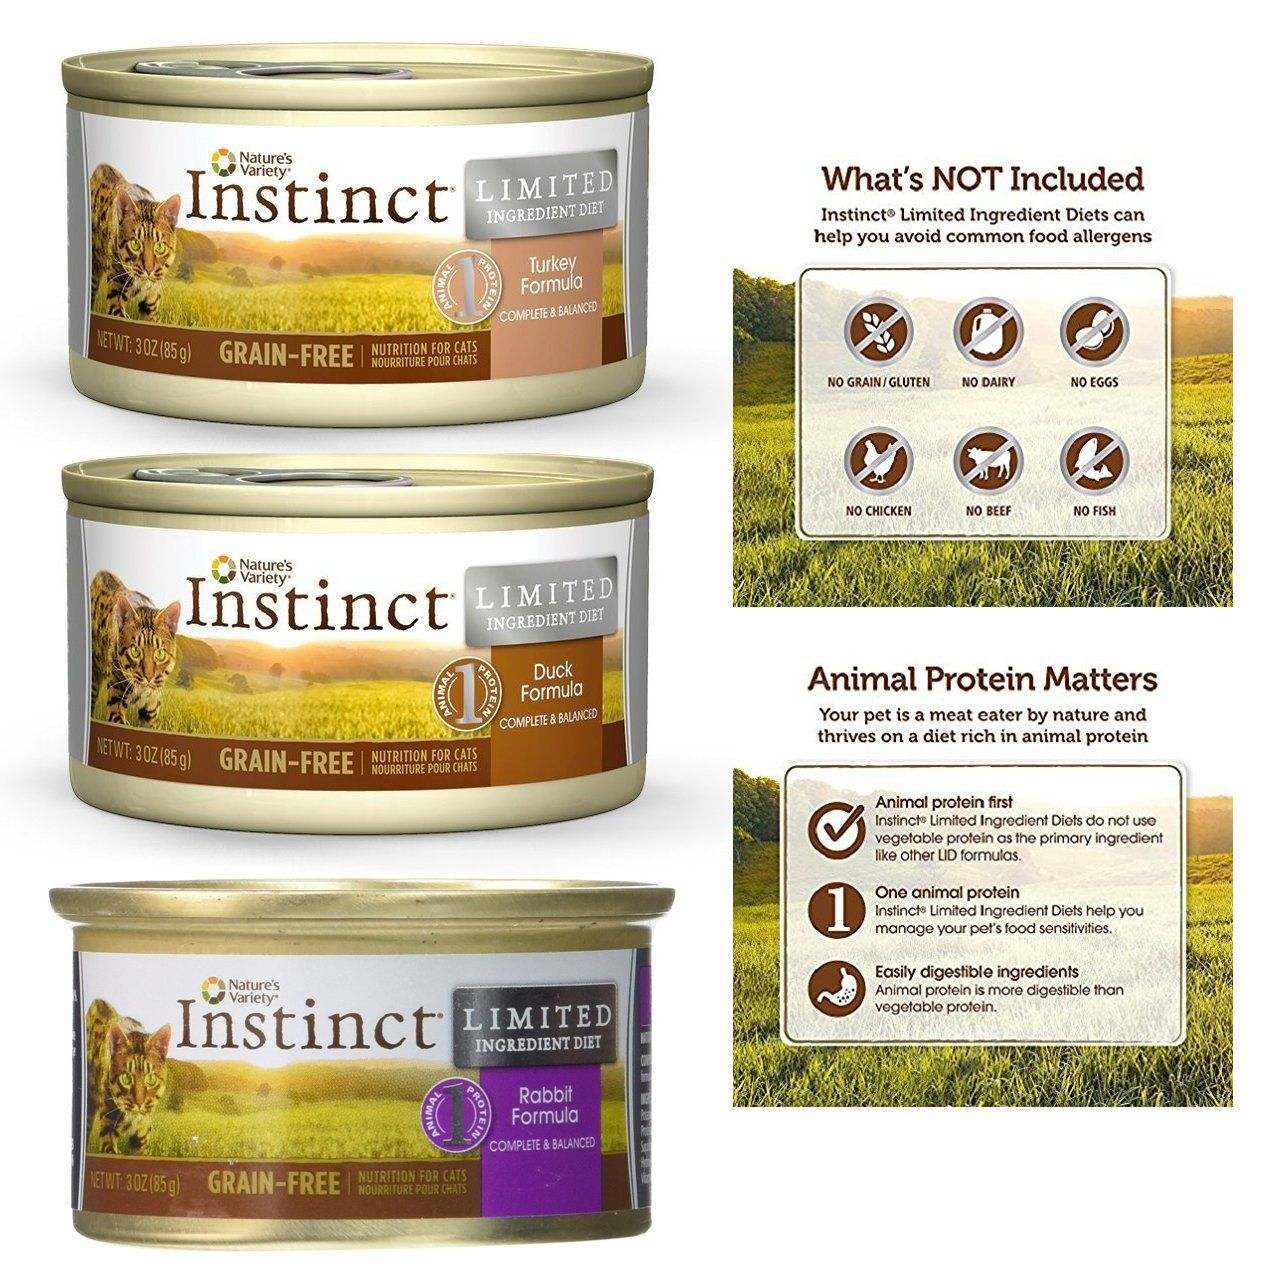 Nature S Variety Instinct Limited Ingredient Diet Canned Cat Food Variety 3 Flavors Duck Rabbit Turkey 3 Ounce Canned Cat Food Food Grain Free Cat Food